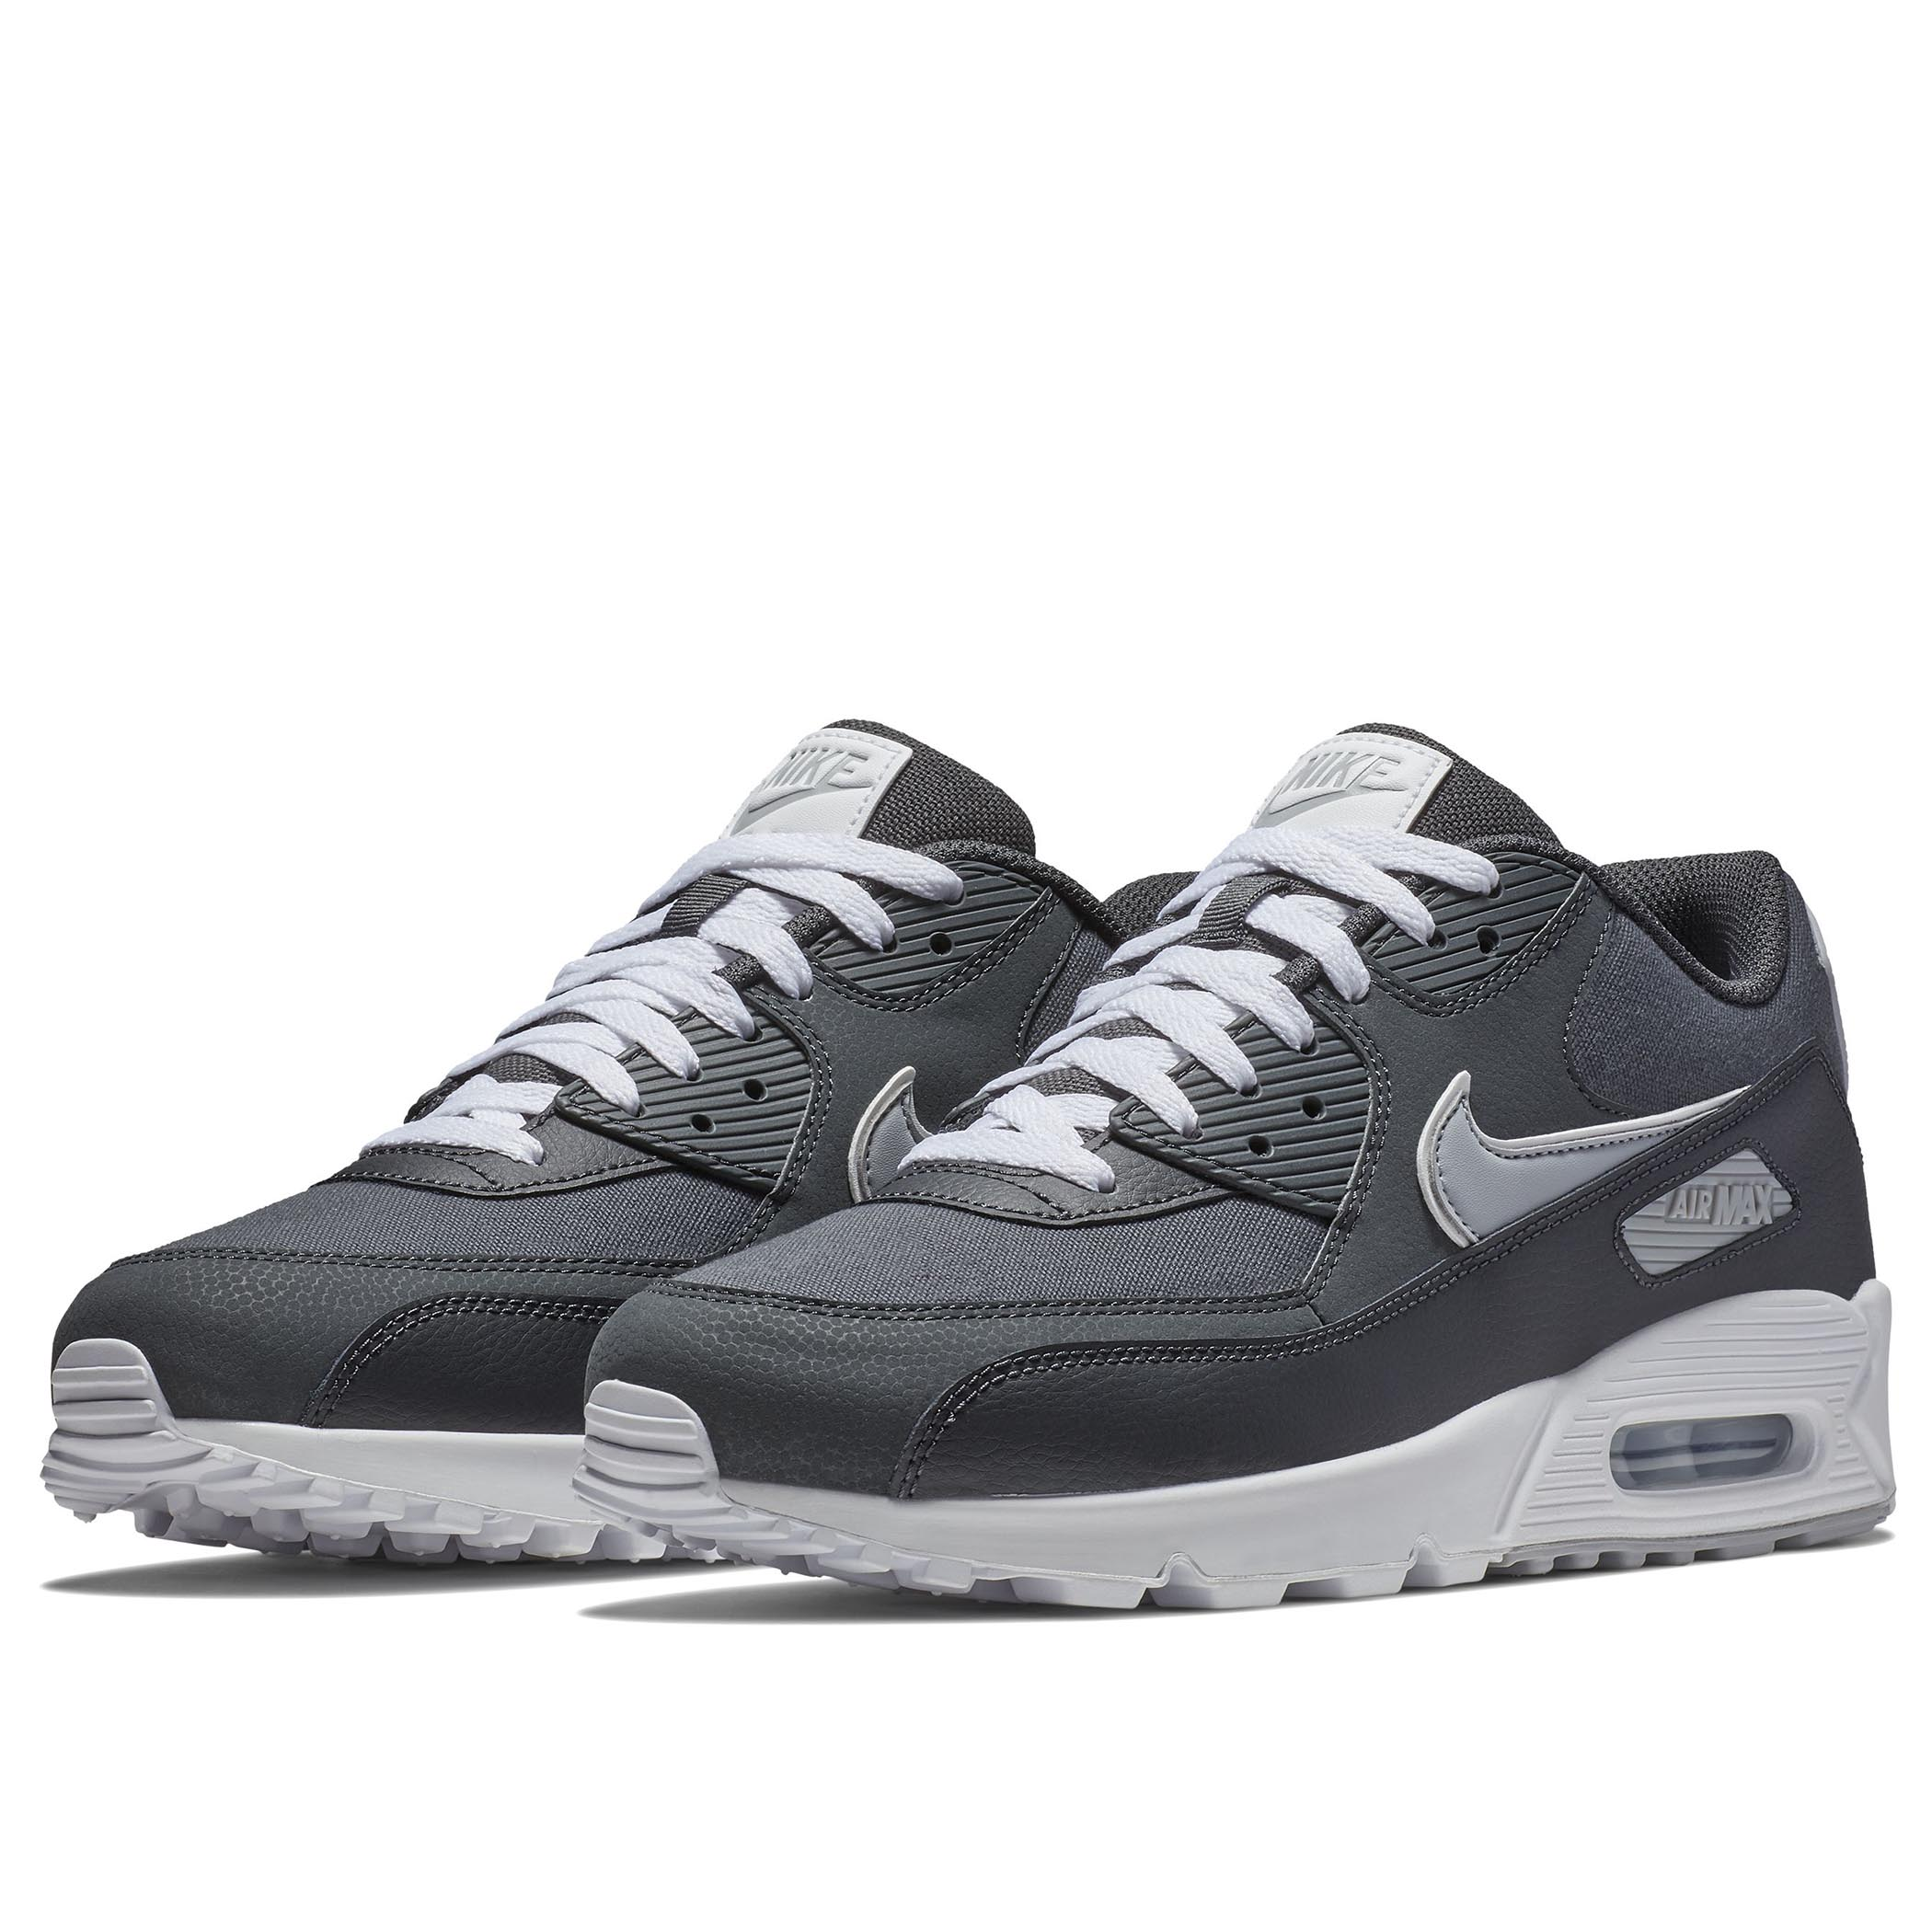 095f22ca Мужские кроссовки Nike Air Max 90 Essential Anthracite/Wolf Grey-White -  фото 2